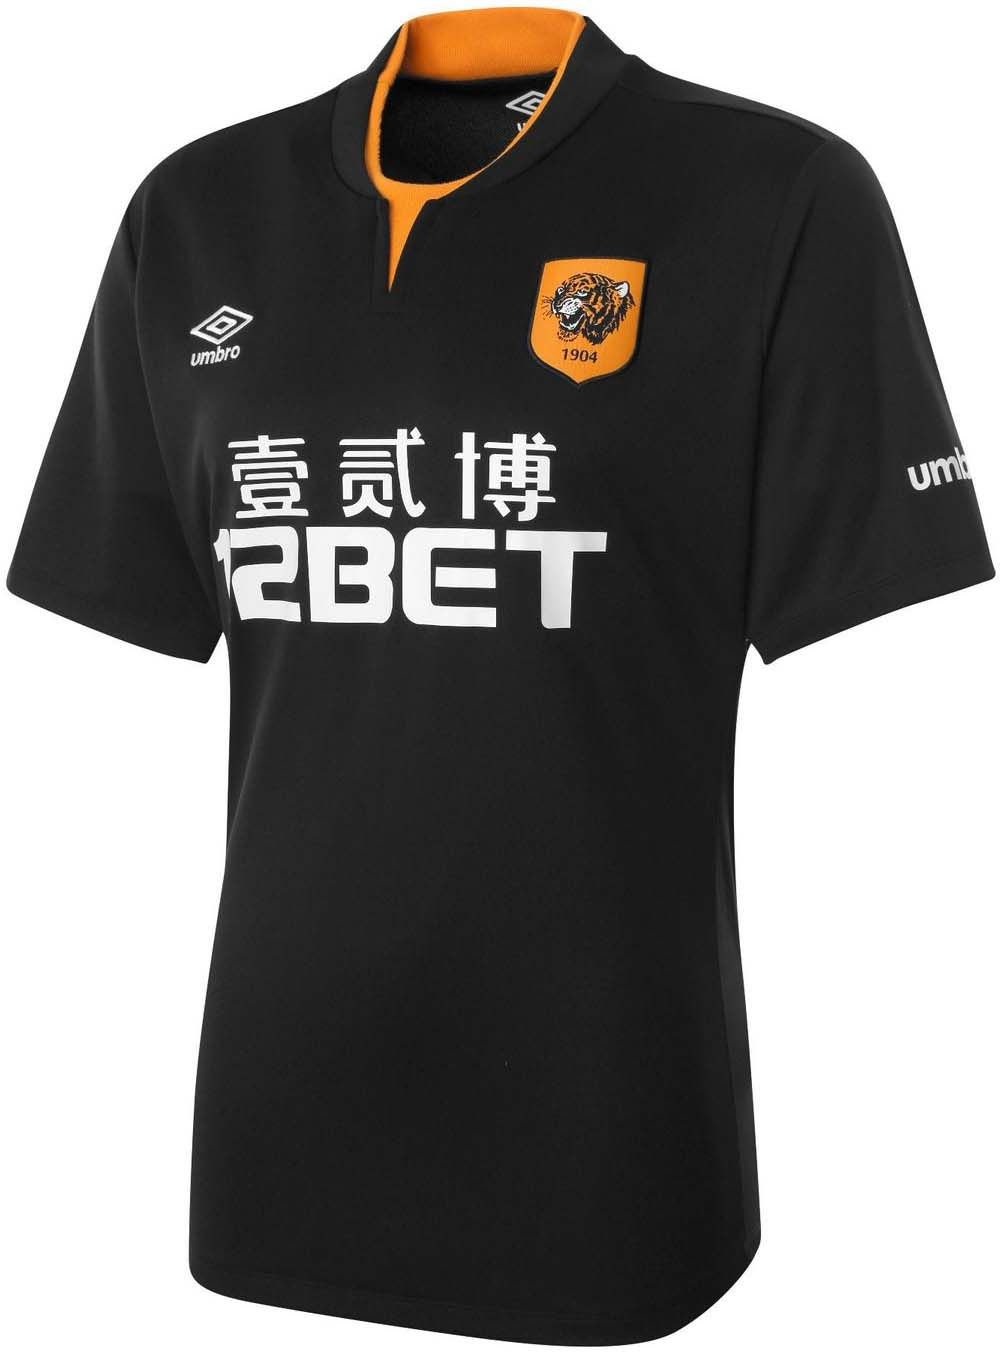 5141f0664a New Umbro Hull City 14-15 Kits unveiled. The Hull 14-15 Home Shirt is  orange with black stripes